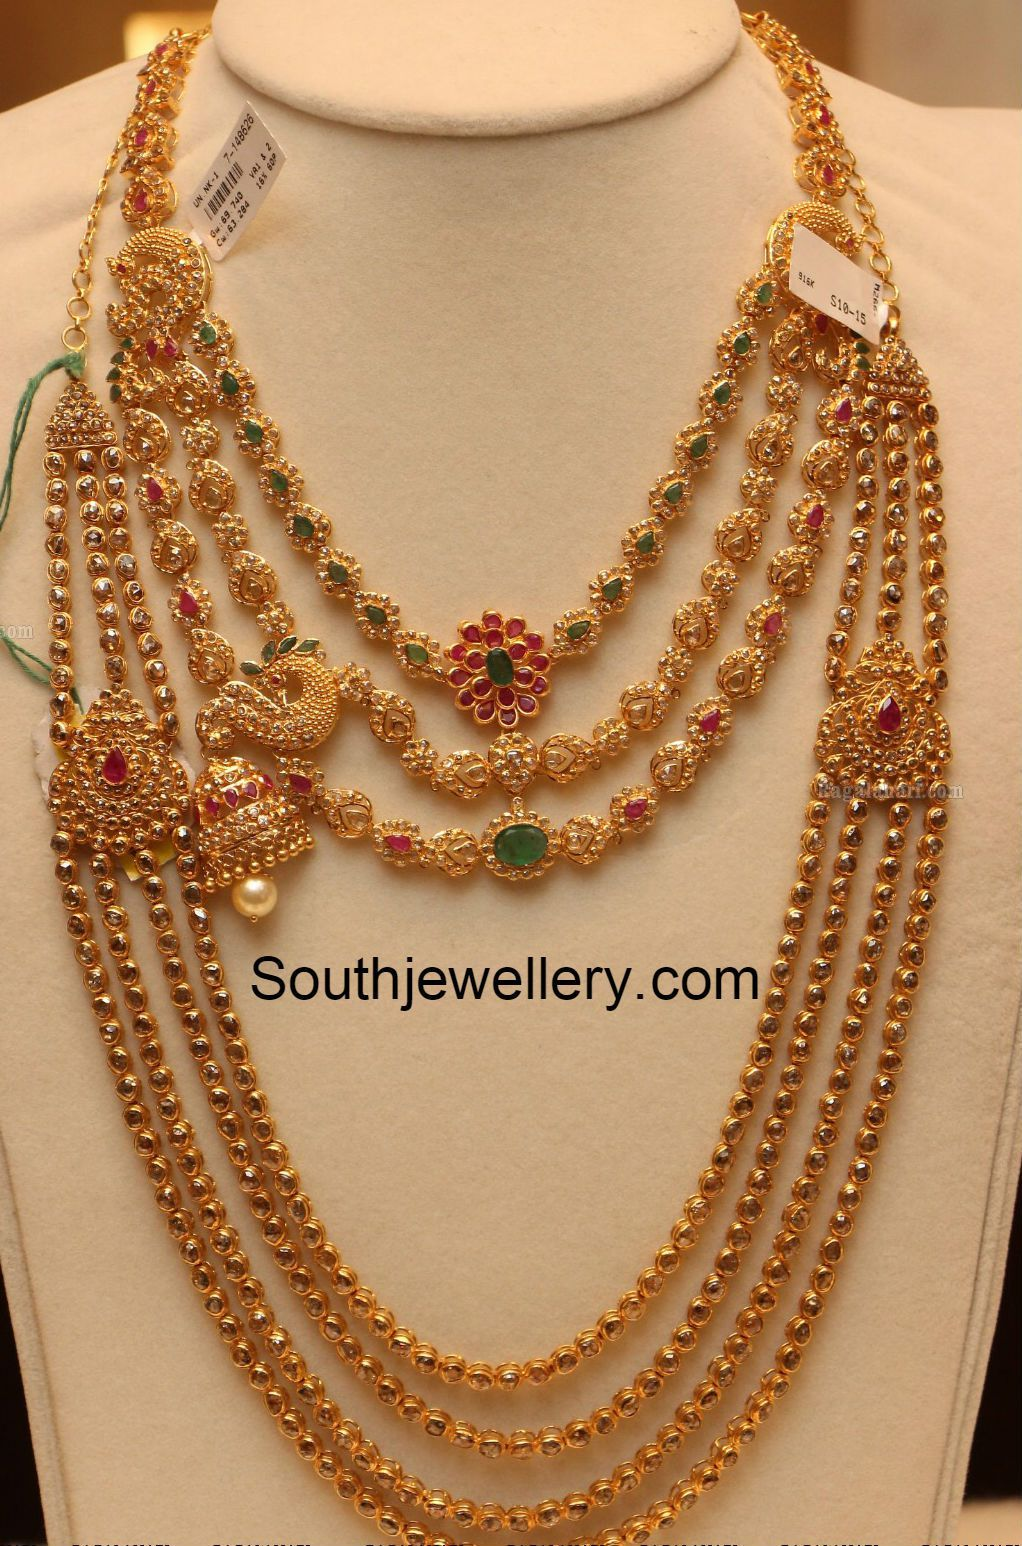 set cilory necklace american diamond buy pendants indian and necklaces